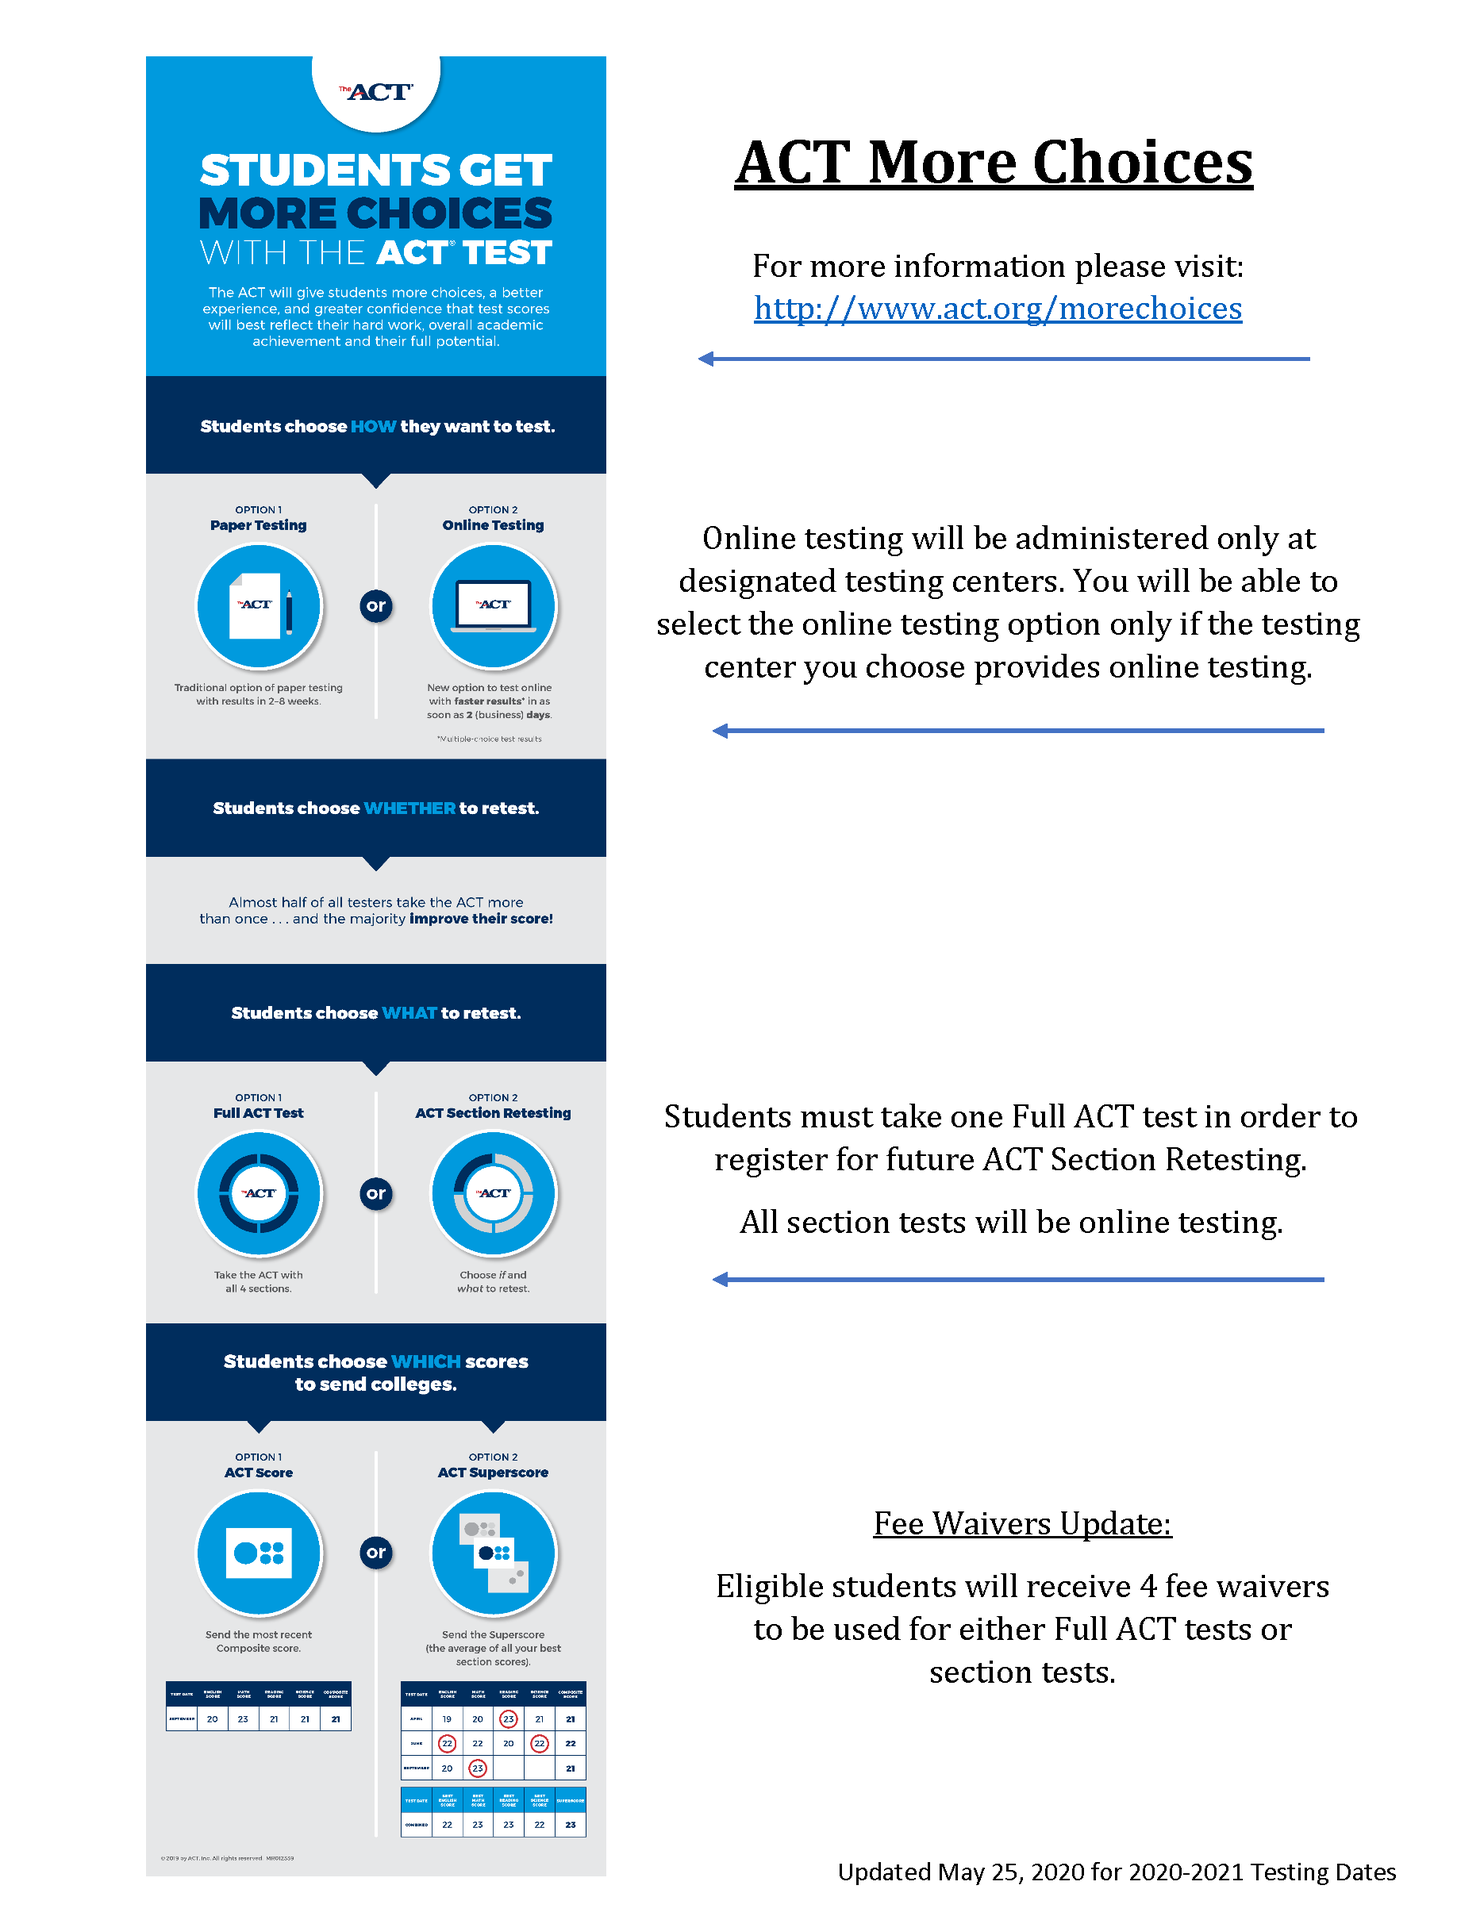 ACT More Choices Infographic